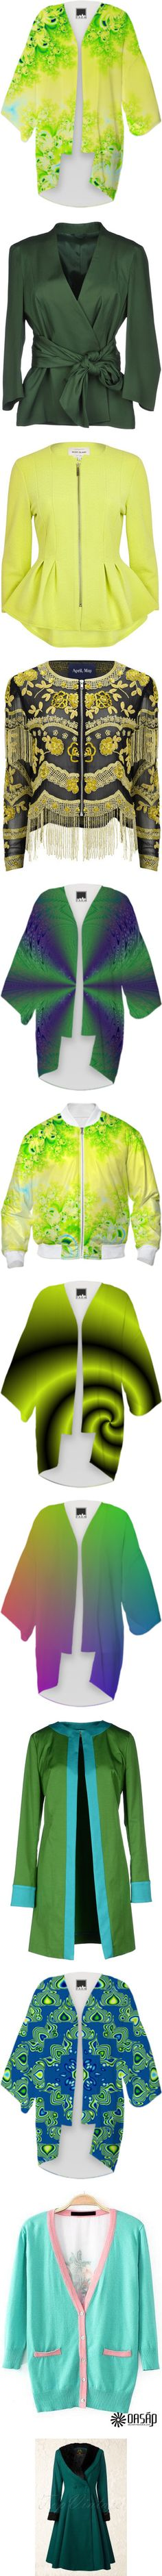 * #OUTERWEAR: #YELLOW & #GREEN * by artist4god-rose-santuci-sofranko on Polyvore featuring polyvore, fashion, clothing, intimates, robes, kimono, kimono robe, outerwear, jackets, blazers, tops, coats, military green, green blazer, long sleeve jacket, green military jacket, military blazer, green military style jacket, sale, yellow jacket, cinch jackets, peplum zip jacket, collarless jacket, peplum jacket, yellow, black, cowboy jacket, western jacket, floral print jacket, gold jacket, fancy…